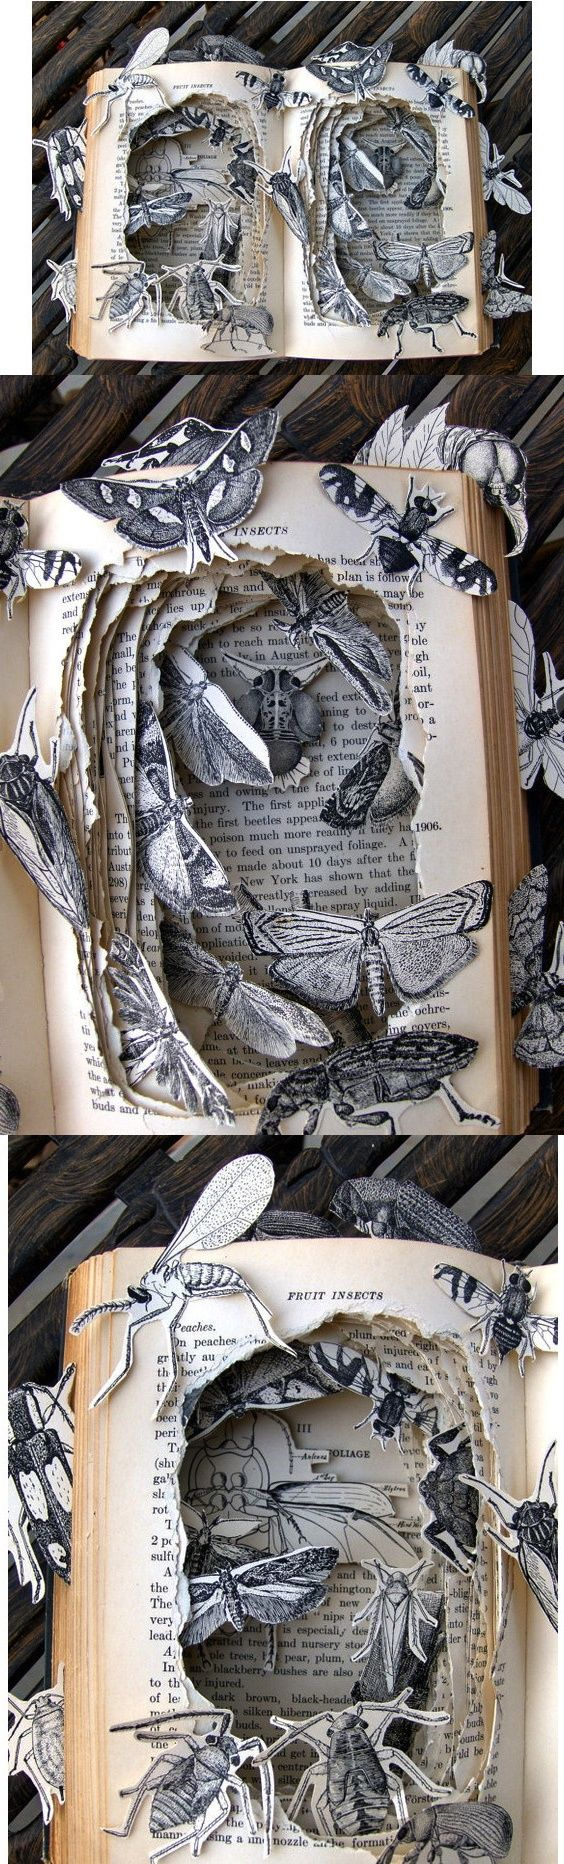 Kelly Campbell, Mayberry's Insects, Art, Sculpture, Paper Craft, Book Art,